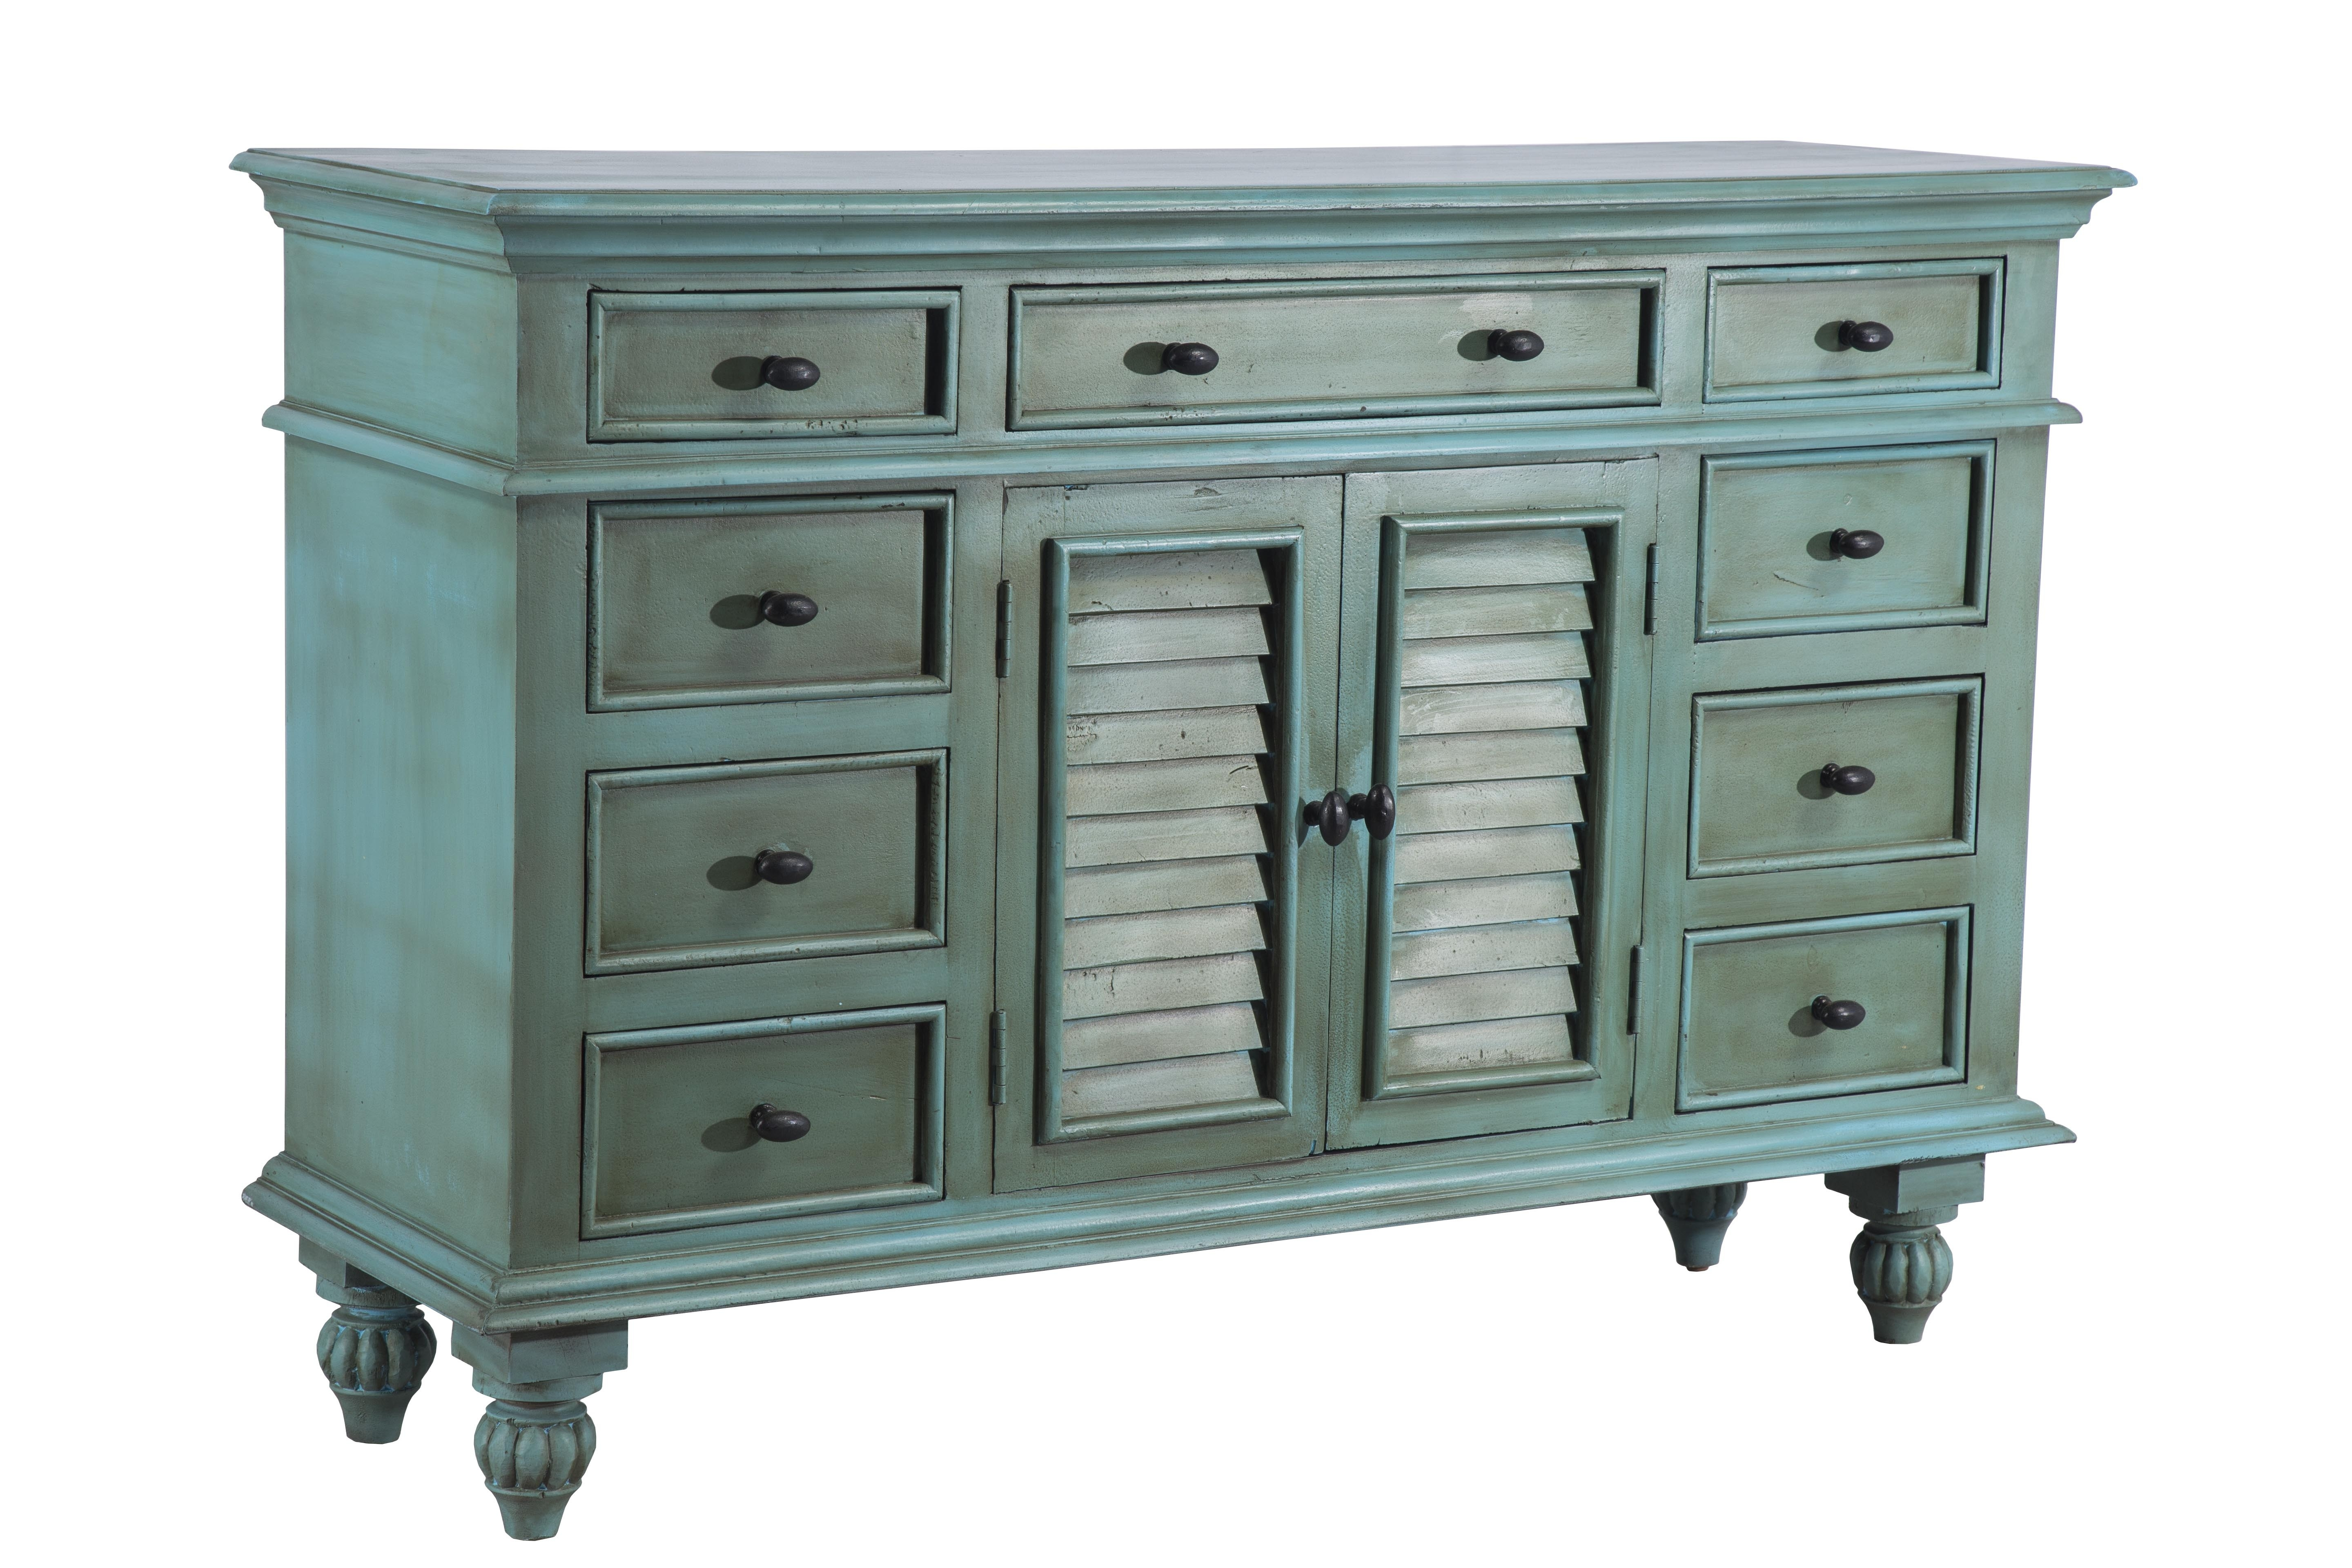 Consoles & Cabinets | Redbarn Furniture within 2-Door/2-Drawer Cast Jali Sideboards (Image 7 of 30)